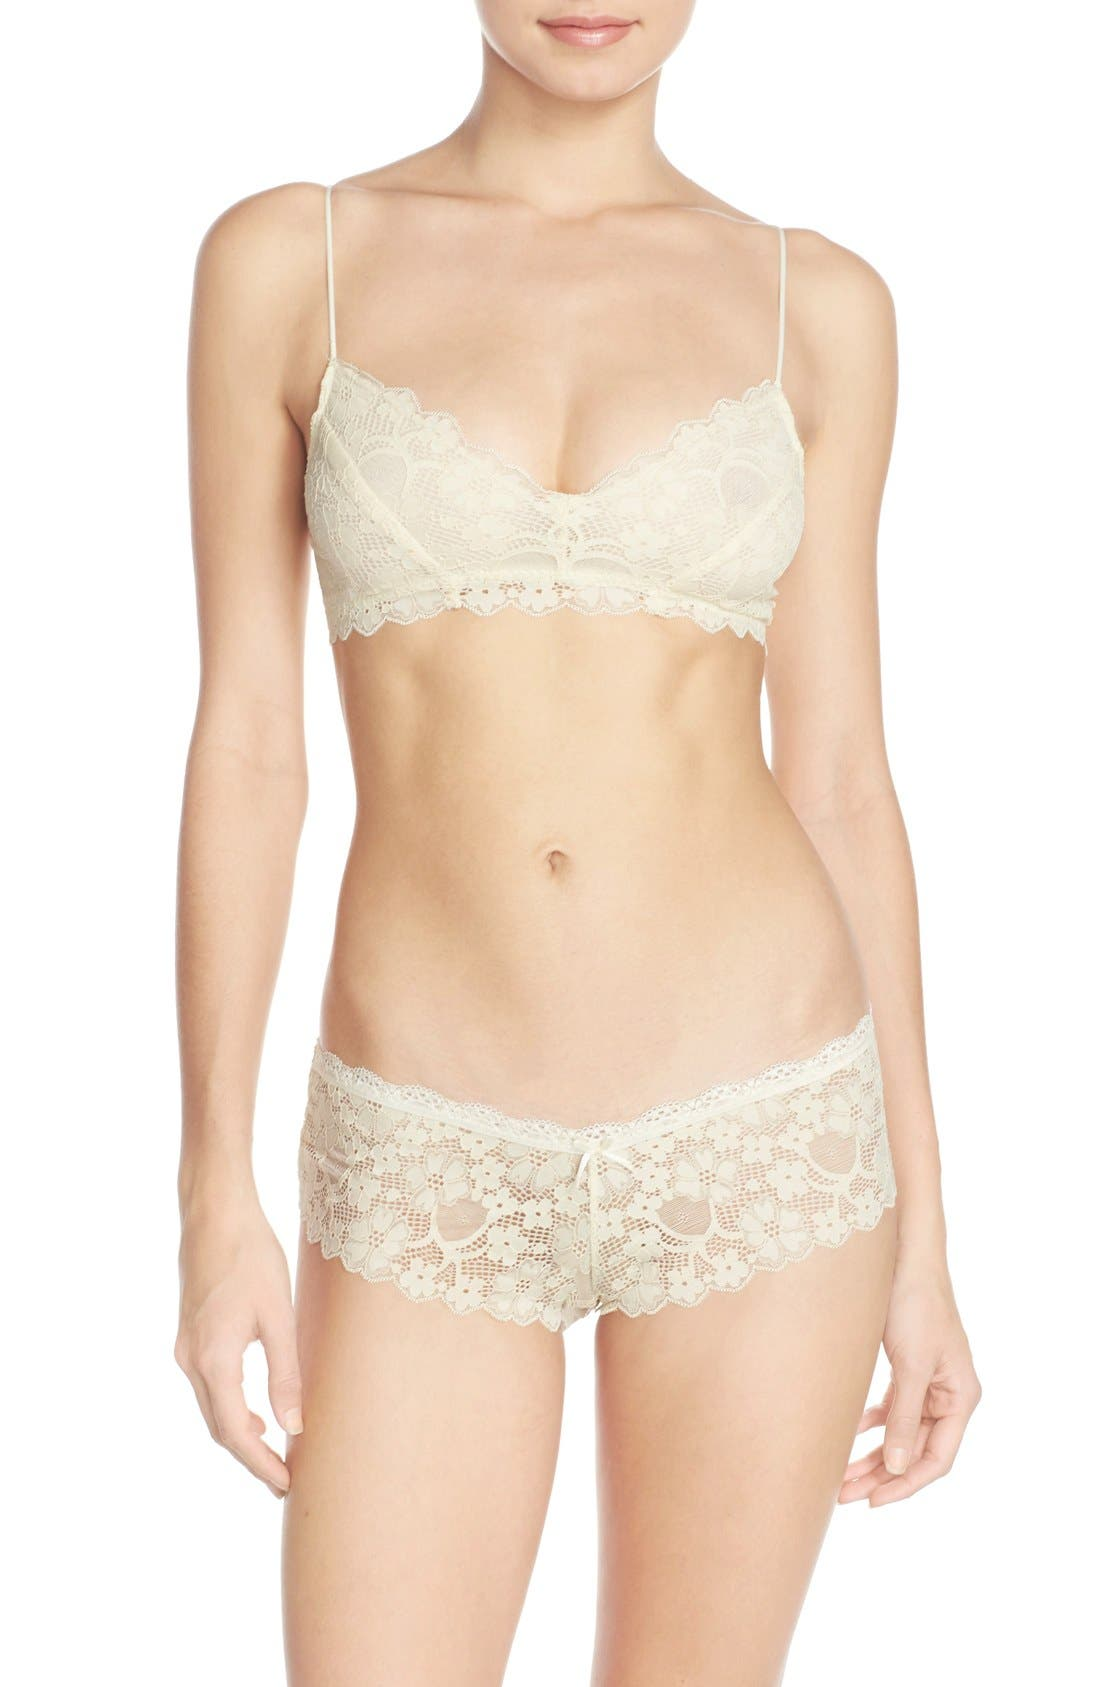 Honeydew Intimates 'Camellia' Bralette & Briefs